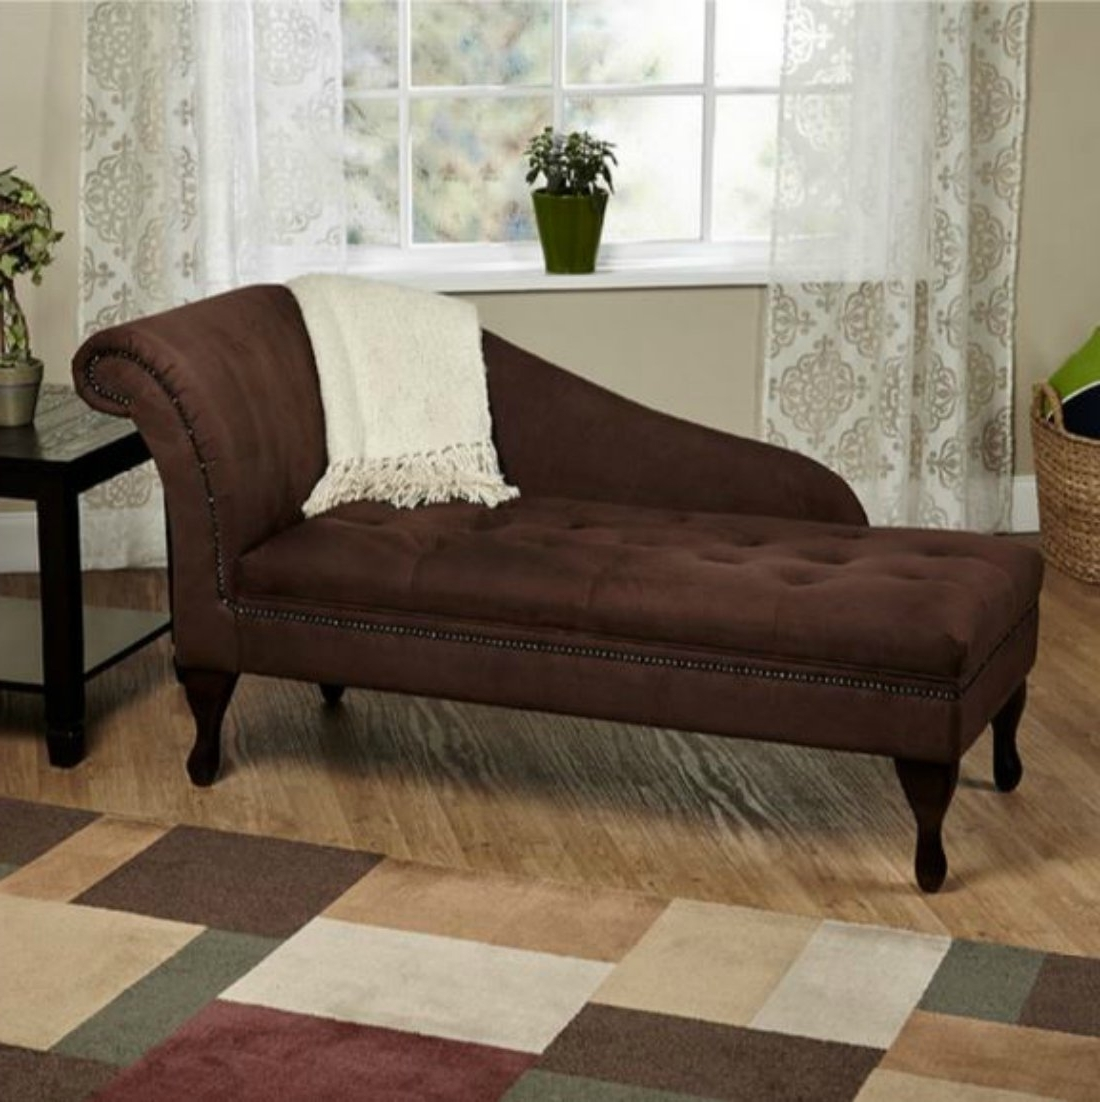 Popular Amazon: Modern Storage Chaise Lounge Chair – This Tufted Inside Tufted Chaise Lounge Chairs (View 6 of 15)